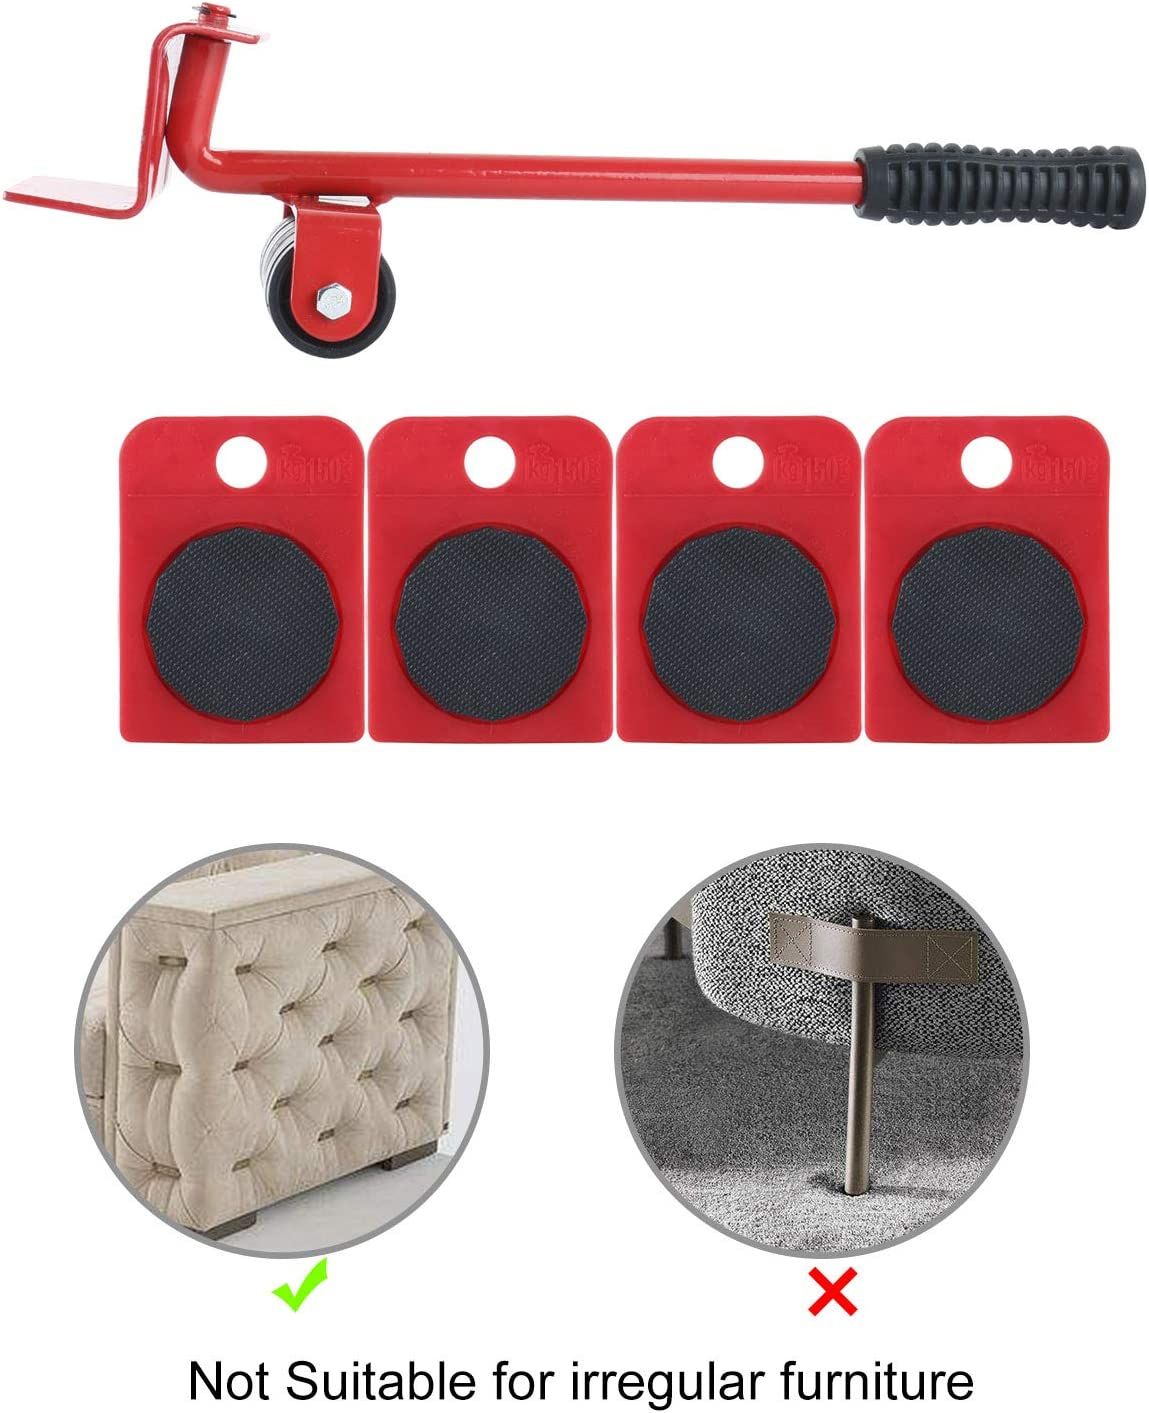 """Homend Furniture Lifter and 4 Packs 3.9""""x3.15"""" Furniture Slides Kit, Heavy Furniture Roller Move Tools Max Up for 150KGS/330 LBS, 360 Degree Rotatable Pads, Easily Redesign and Rearrange Living Space"""